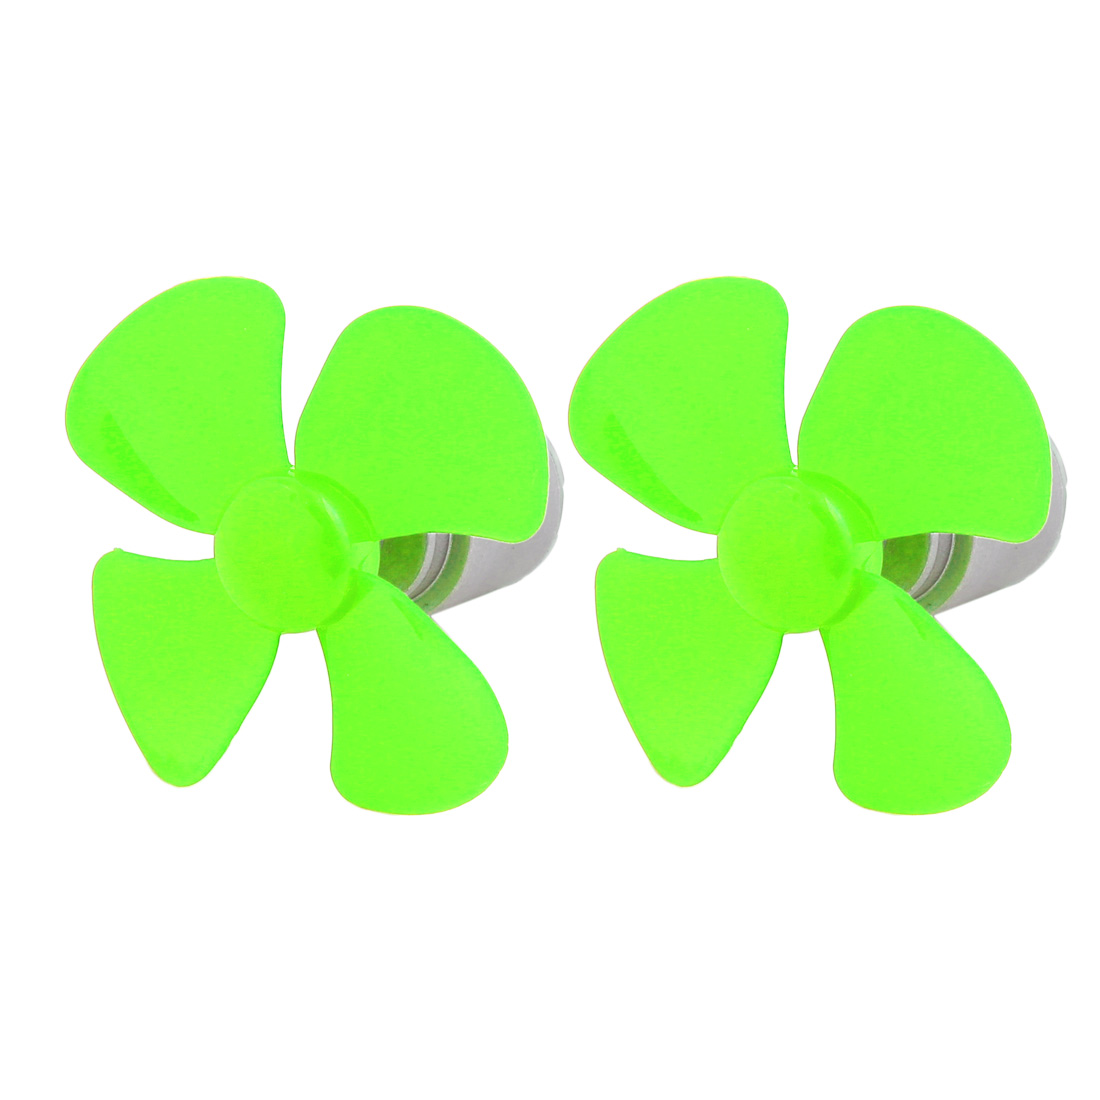 2pcs DC 3V 0.13A 17000RPM Strong Force Motor 4 Blades 56mm Green Propeller for RC Aircraft